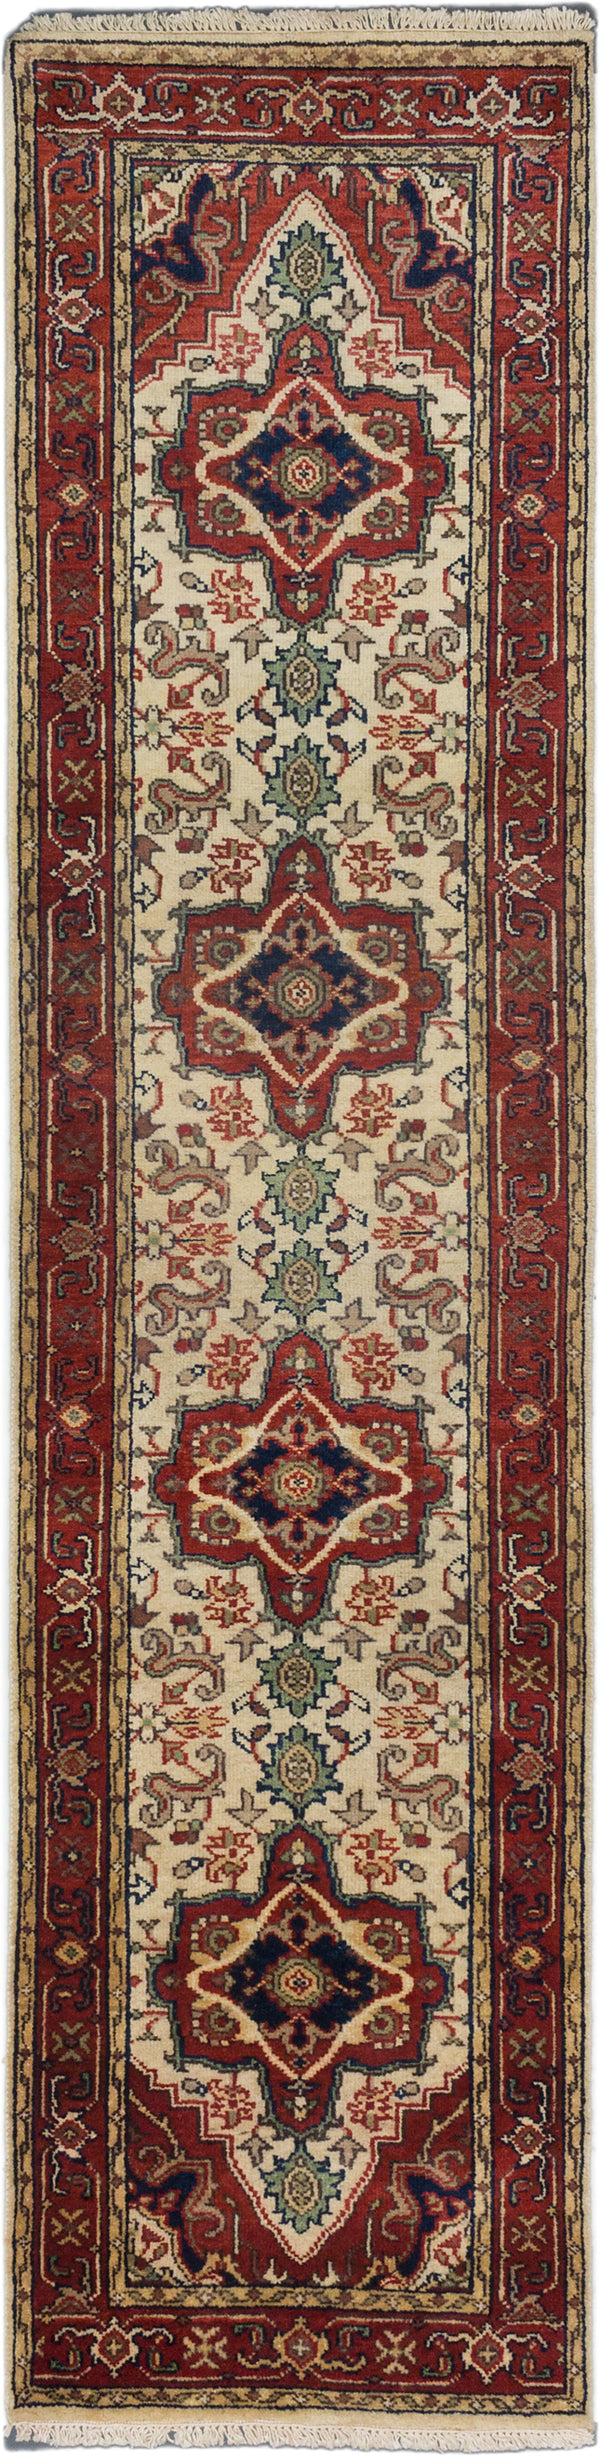 "Hand-knotted Indian Floral  Traditional Serapi-Heritage Runner rug  Cream, Dark Copper 2'6 x 10'2"" """